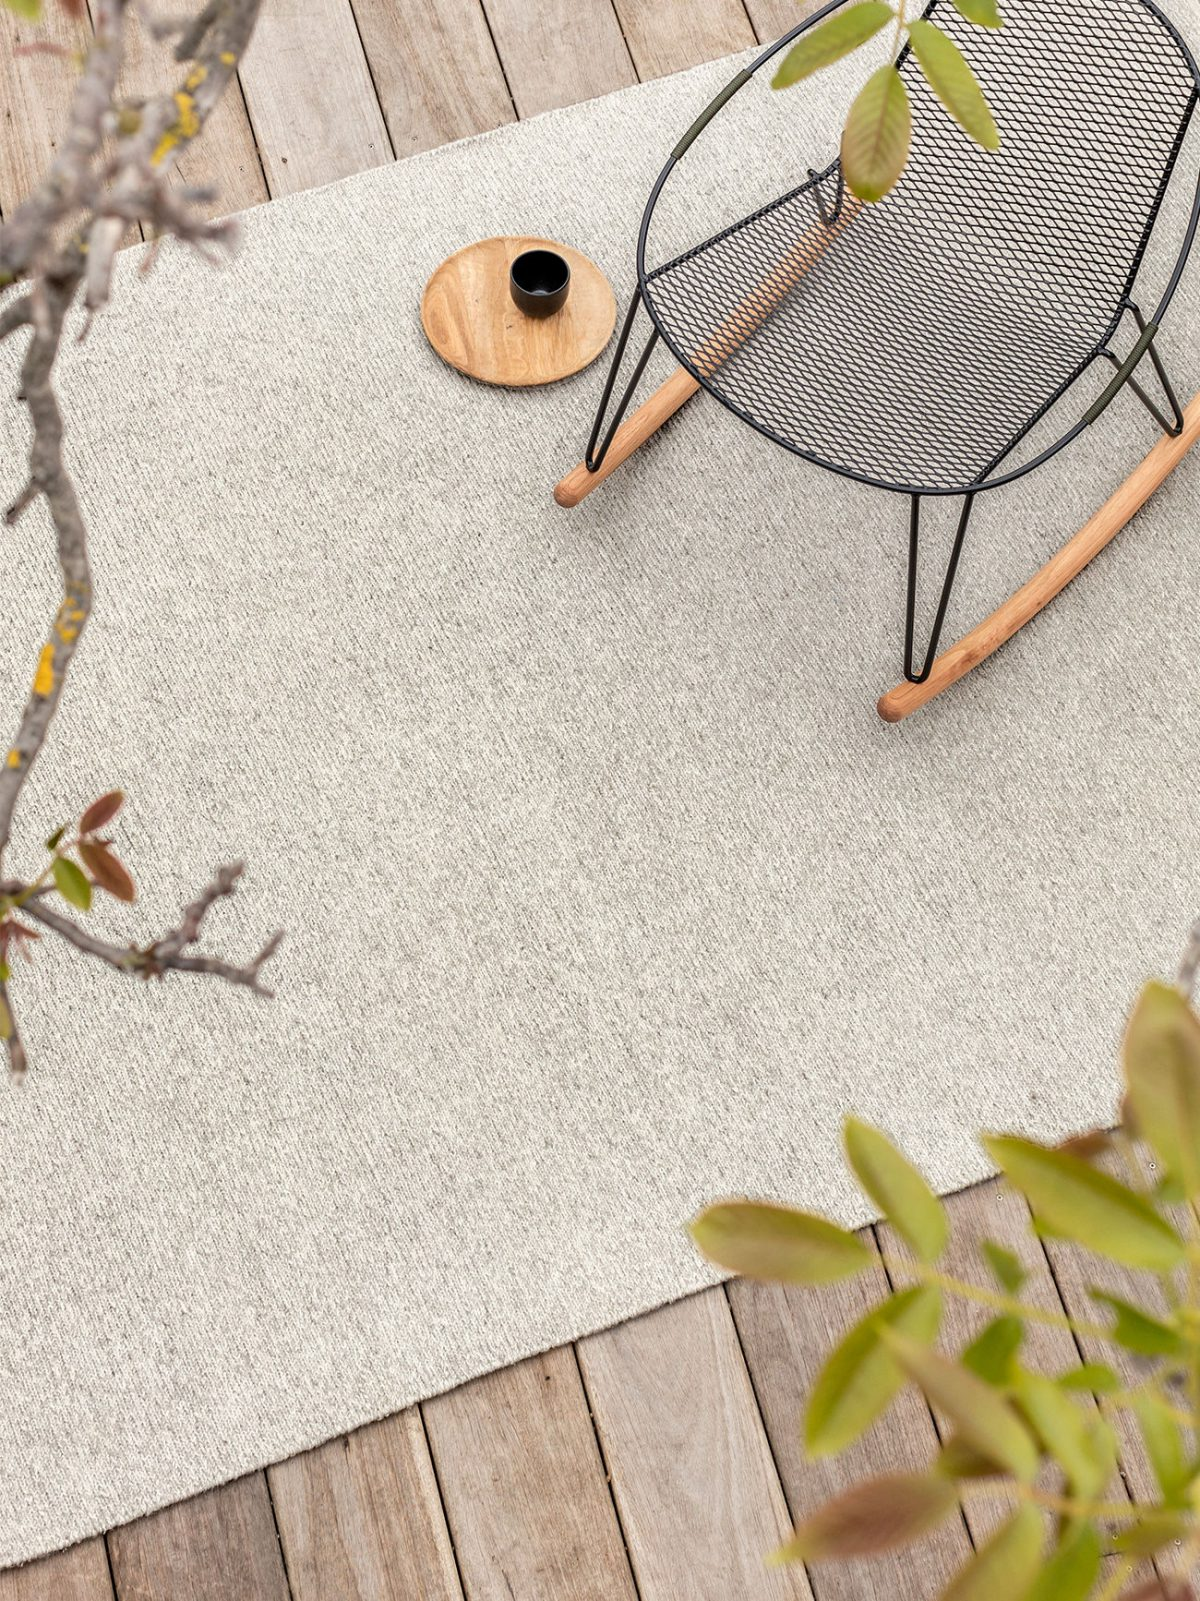 armadillo_rugs_indooroutdoor_horizon_insitu01